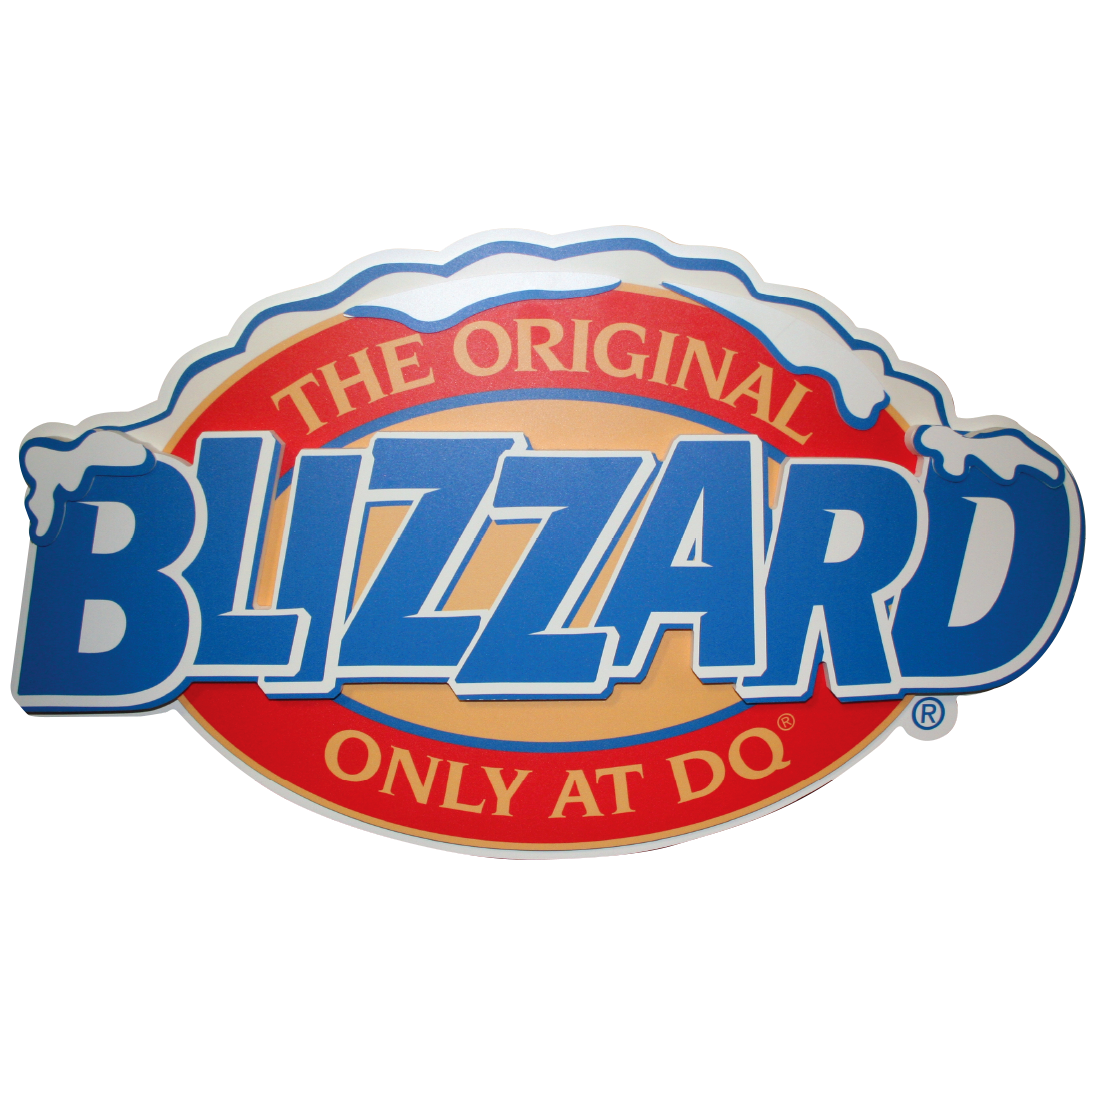 Blizzard Logo Large   Dimensional   In Store Signage